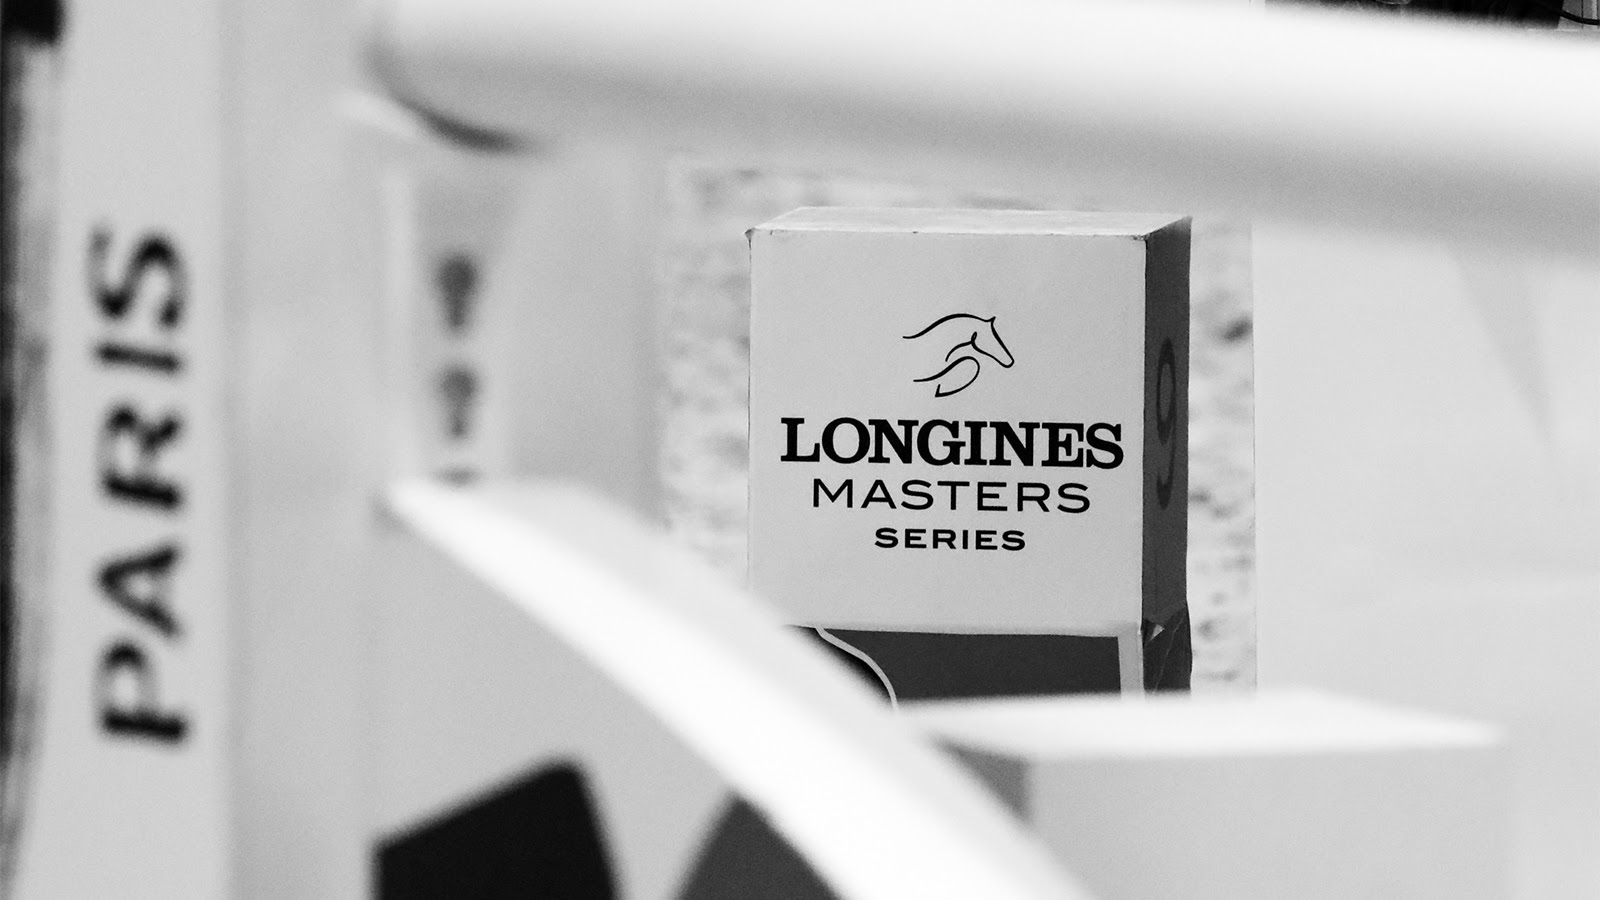 EEM ready to renew their Longines Masters Series